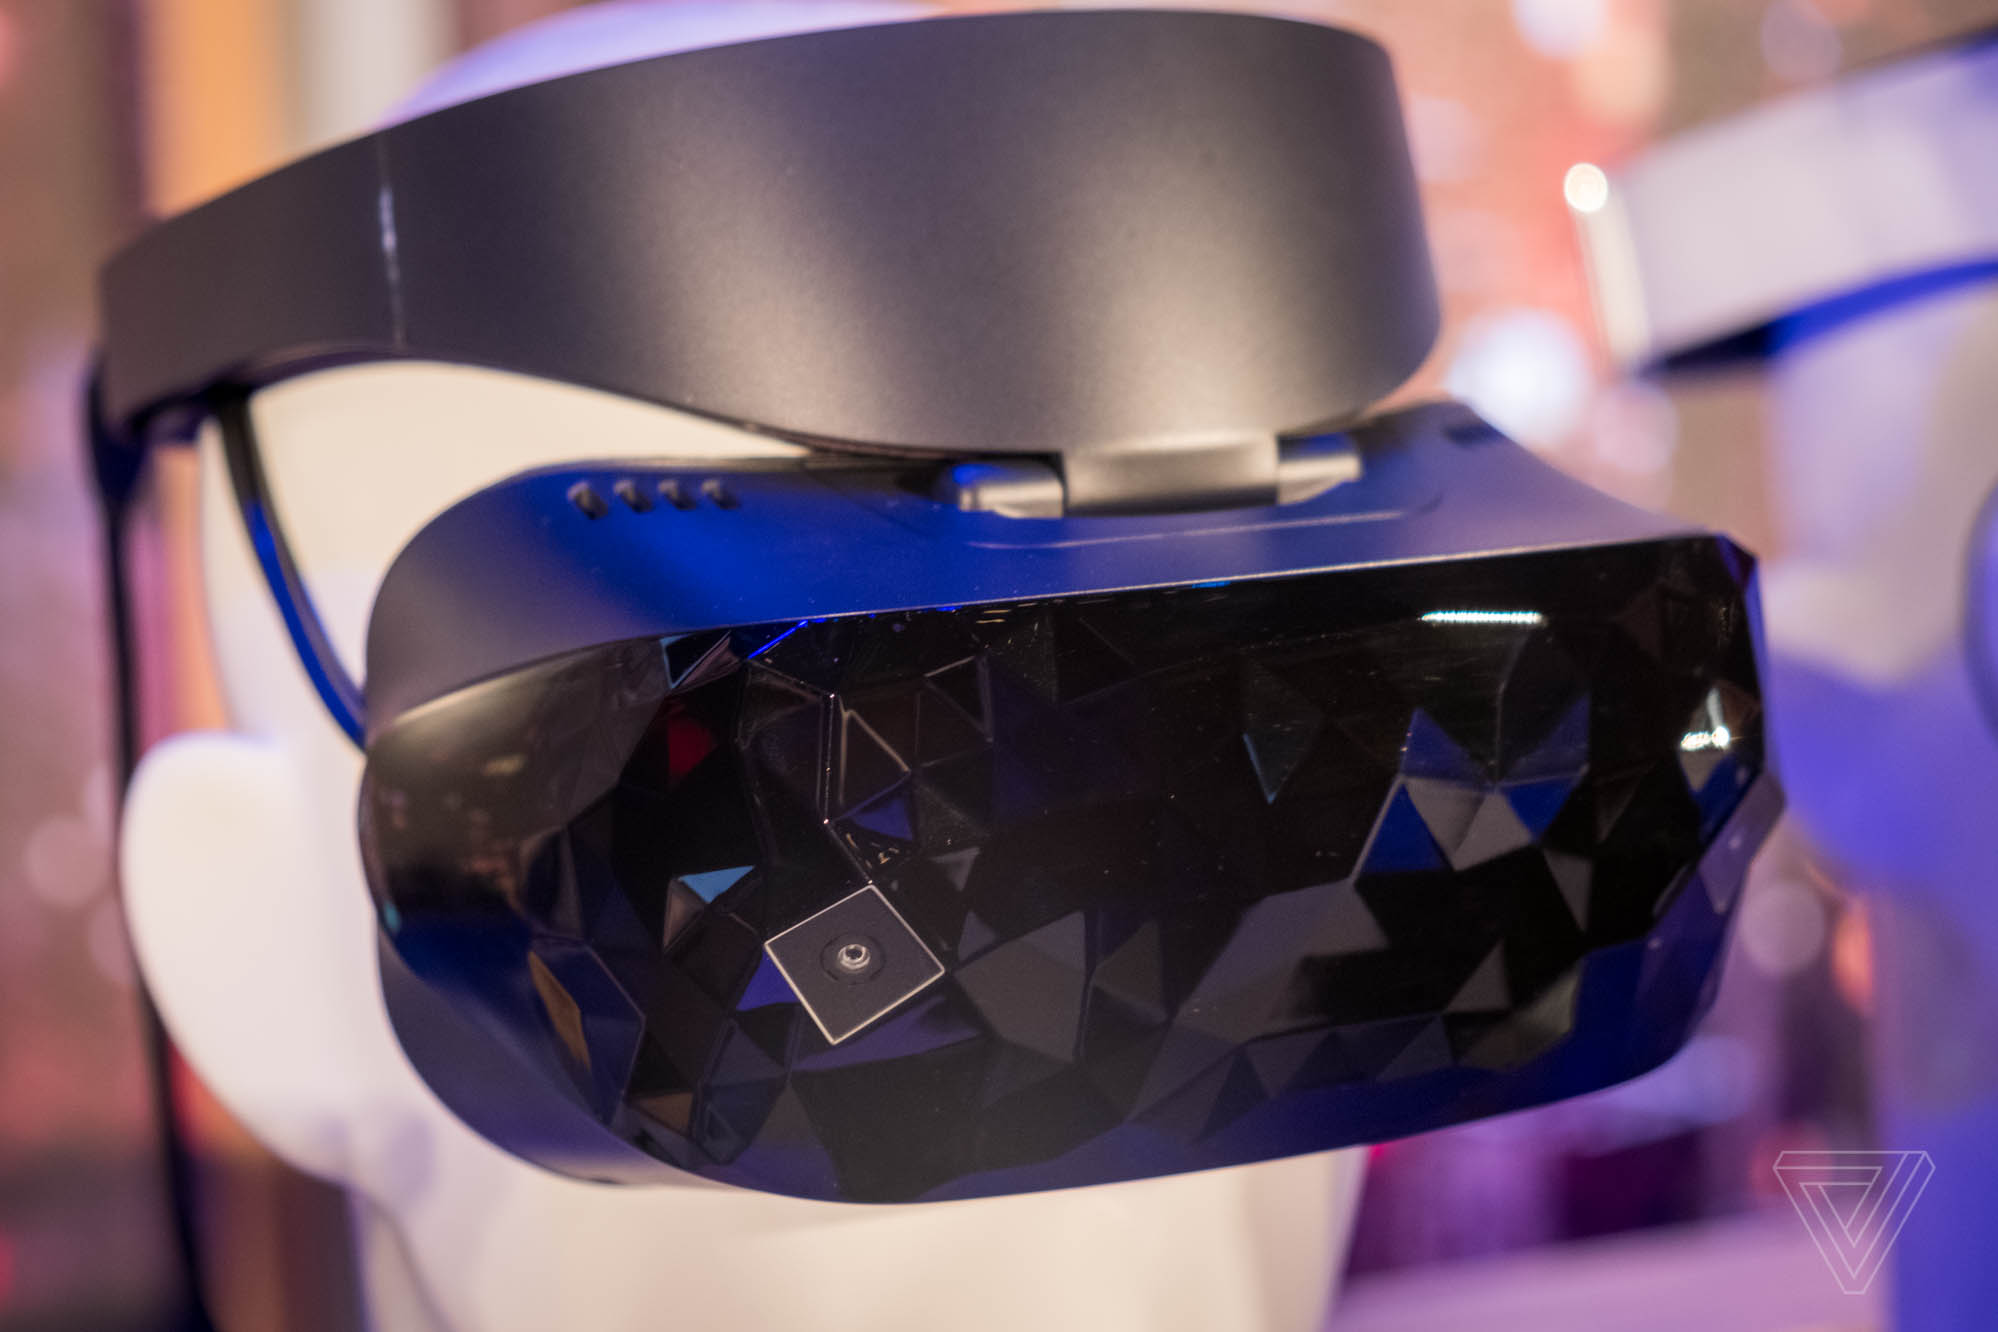 Microsoft reveals Dell and Asus Windows Mixed Reality headsets